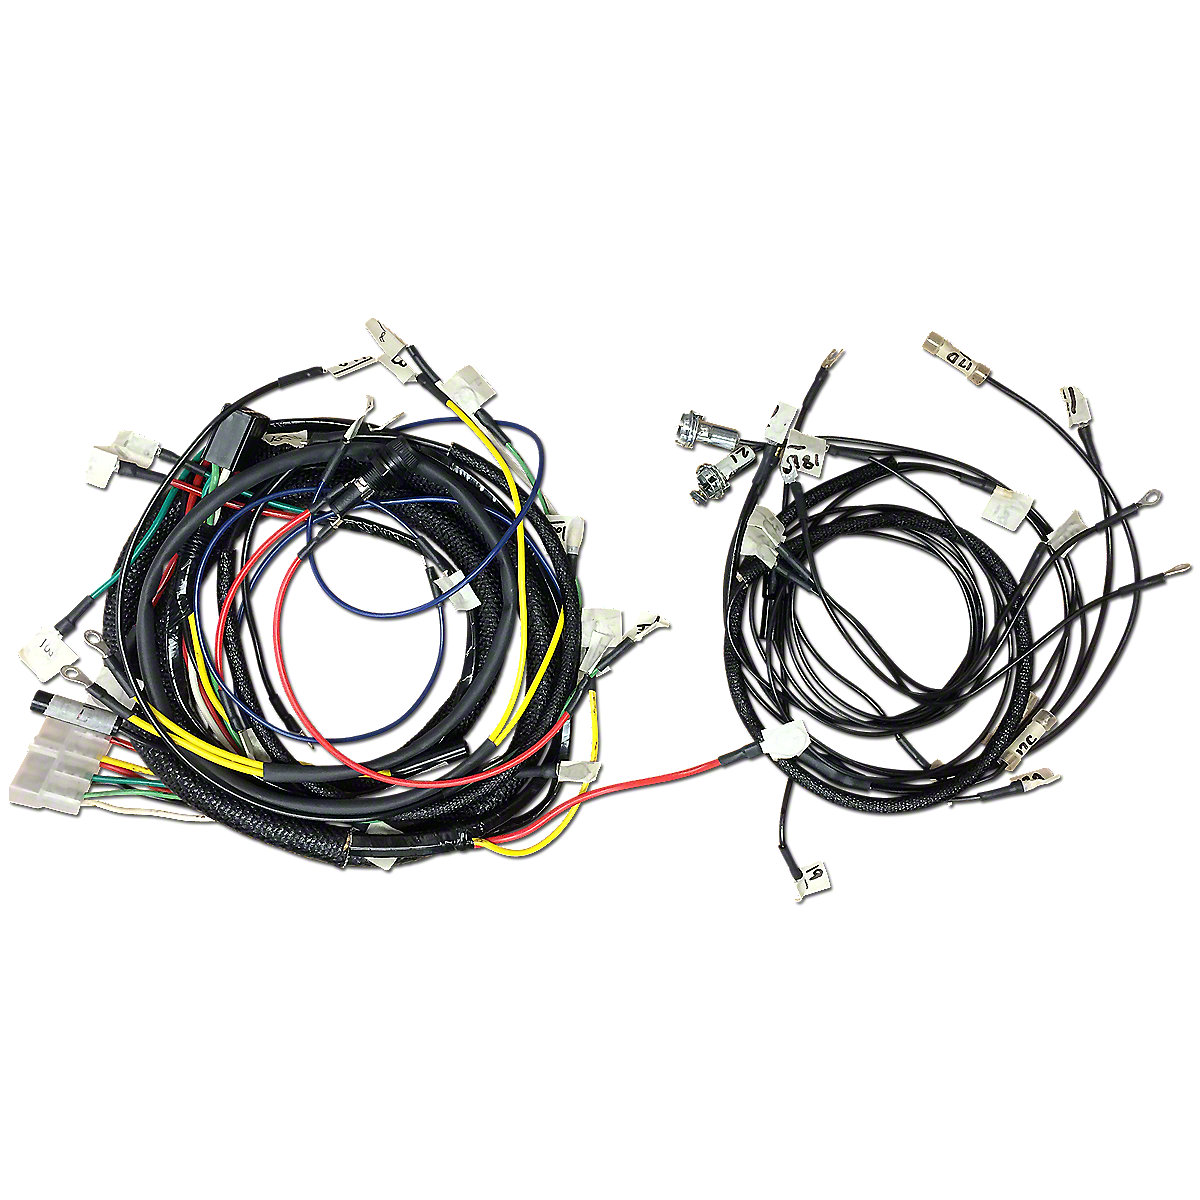 Pollak Wiring Harness Manual Guide Diagram Trailer 7 Solenoid Pronge Connector Odicis Gooseneck